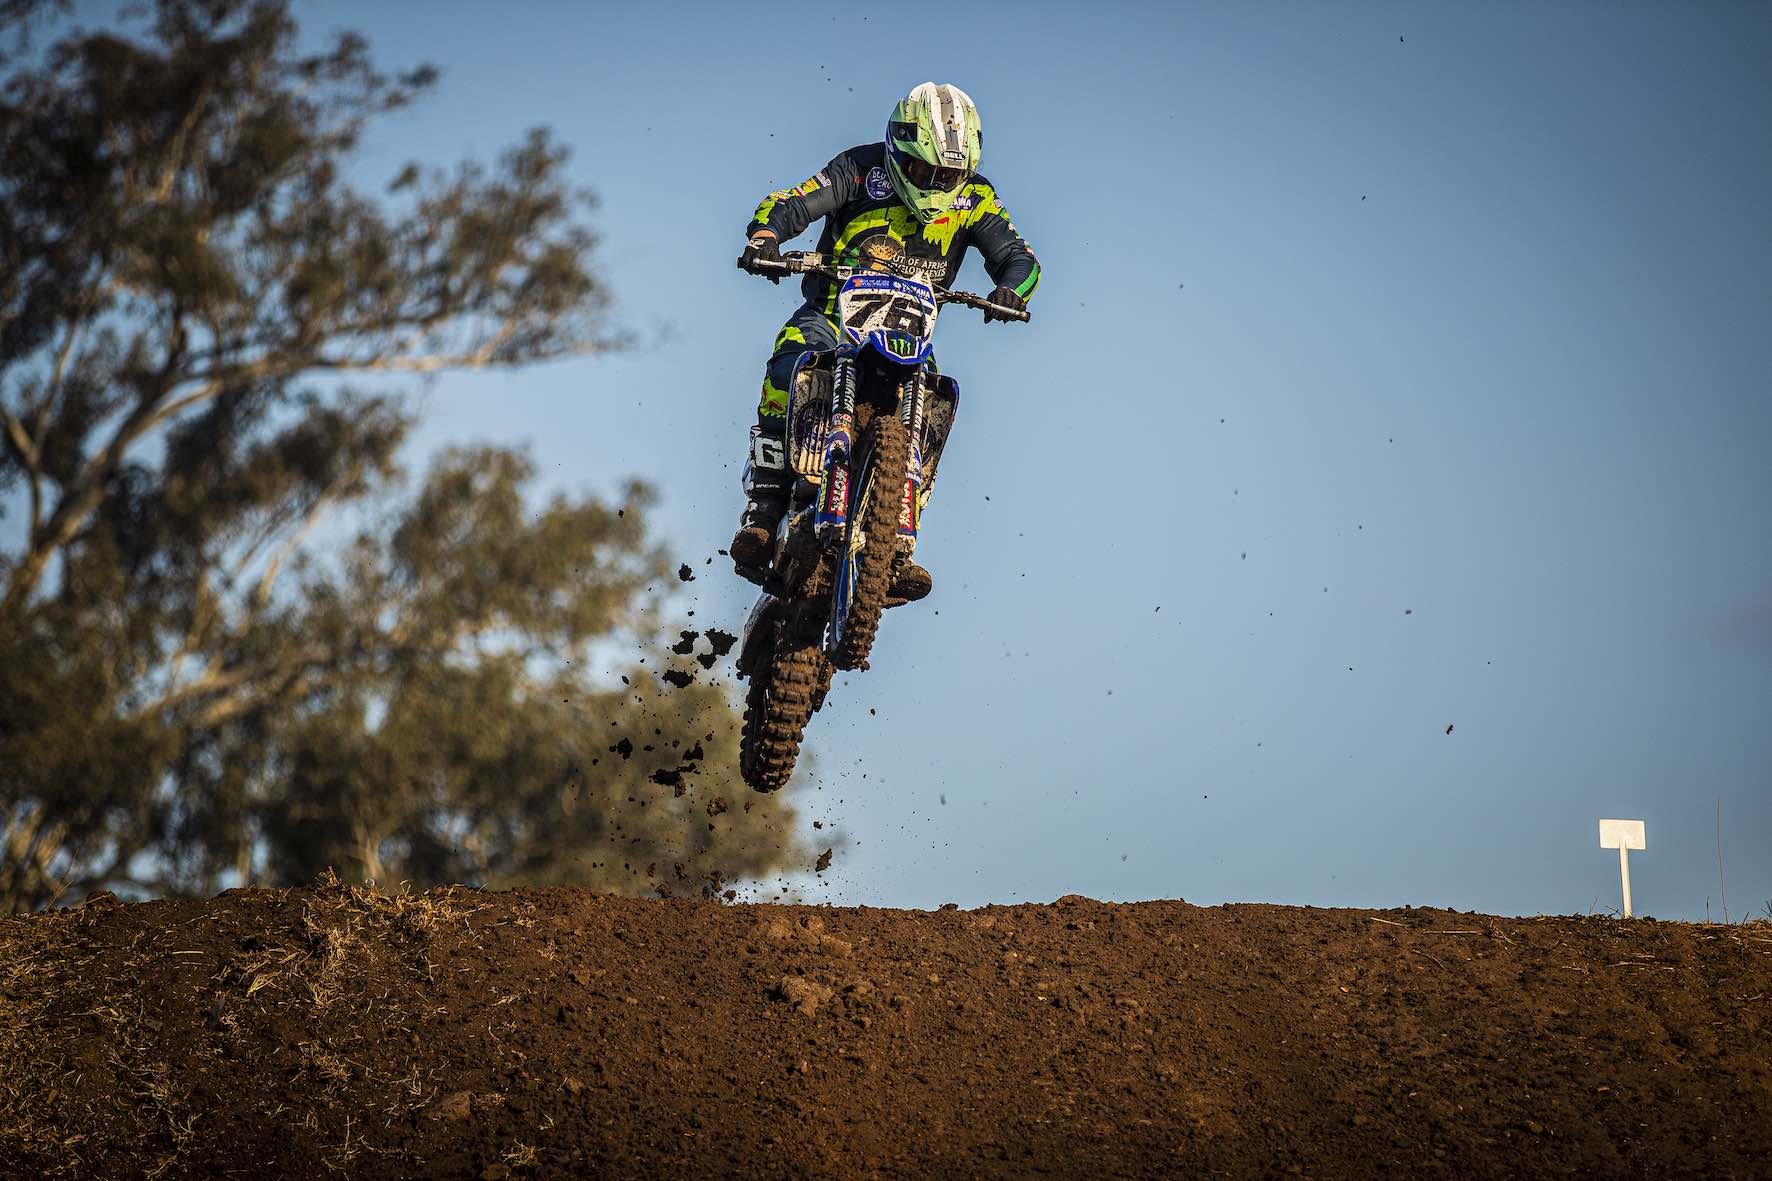 Ian Topliss racing in the 2019 South African National Motocross Championship in Pietermaritzburg